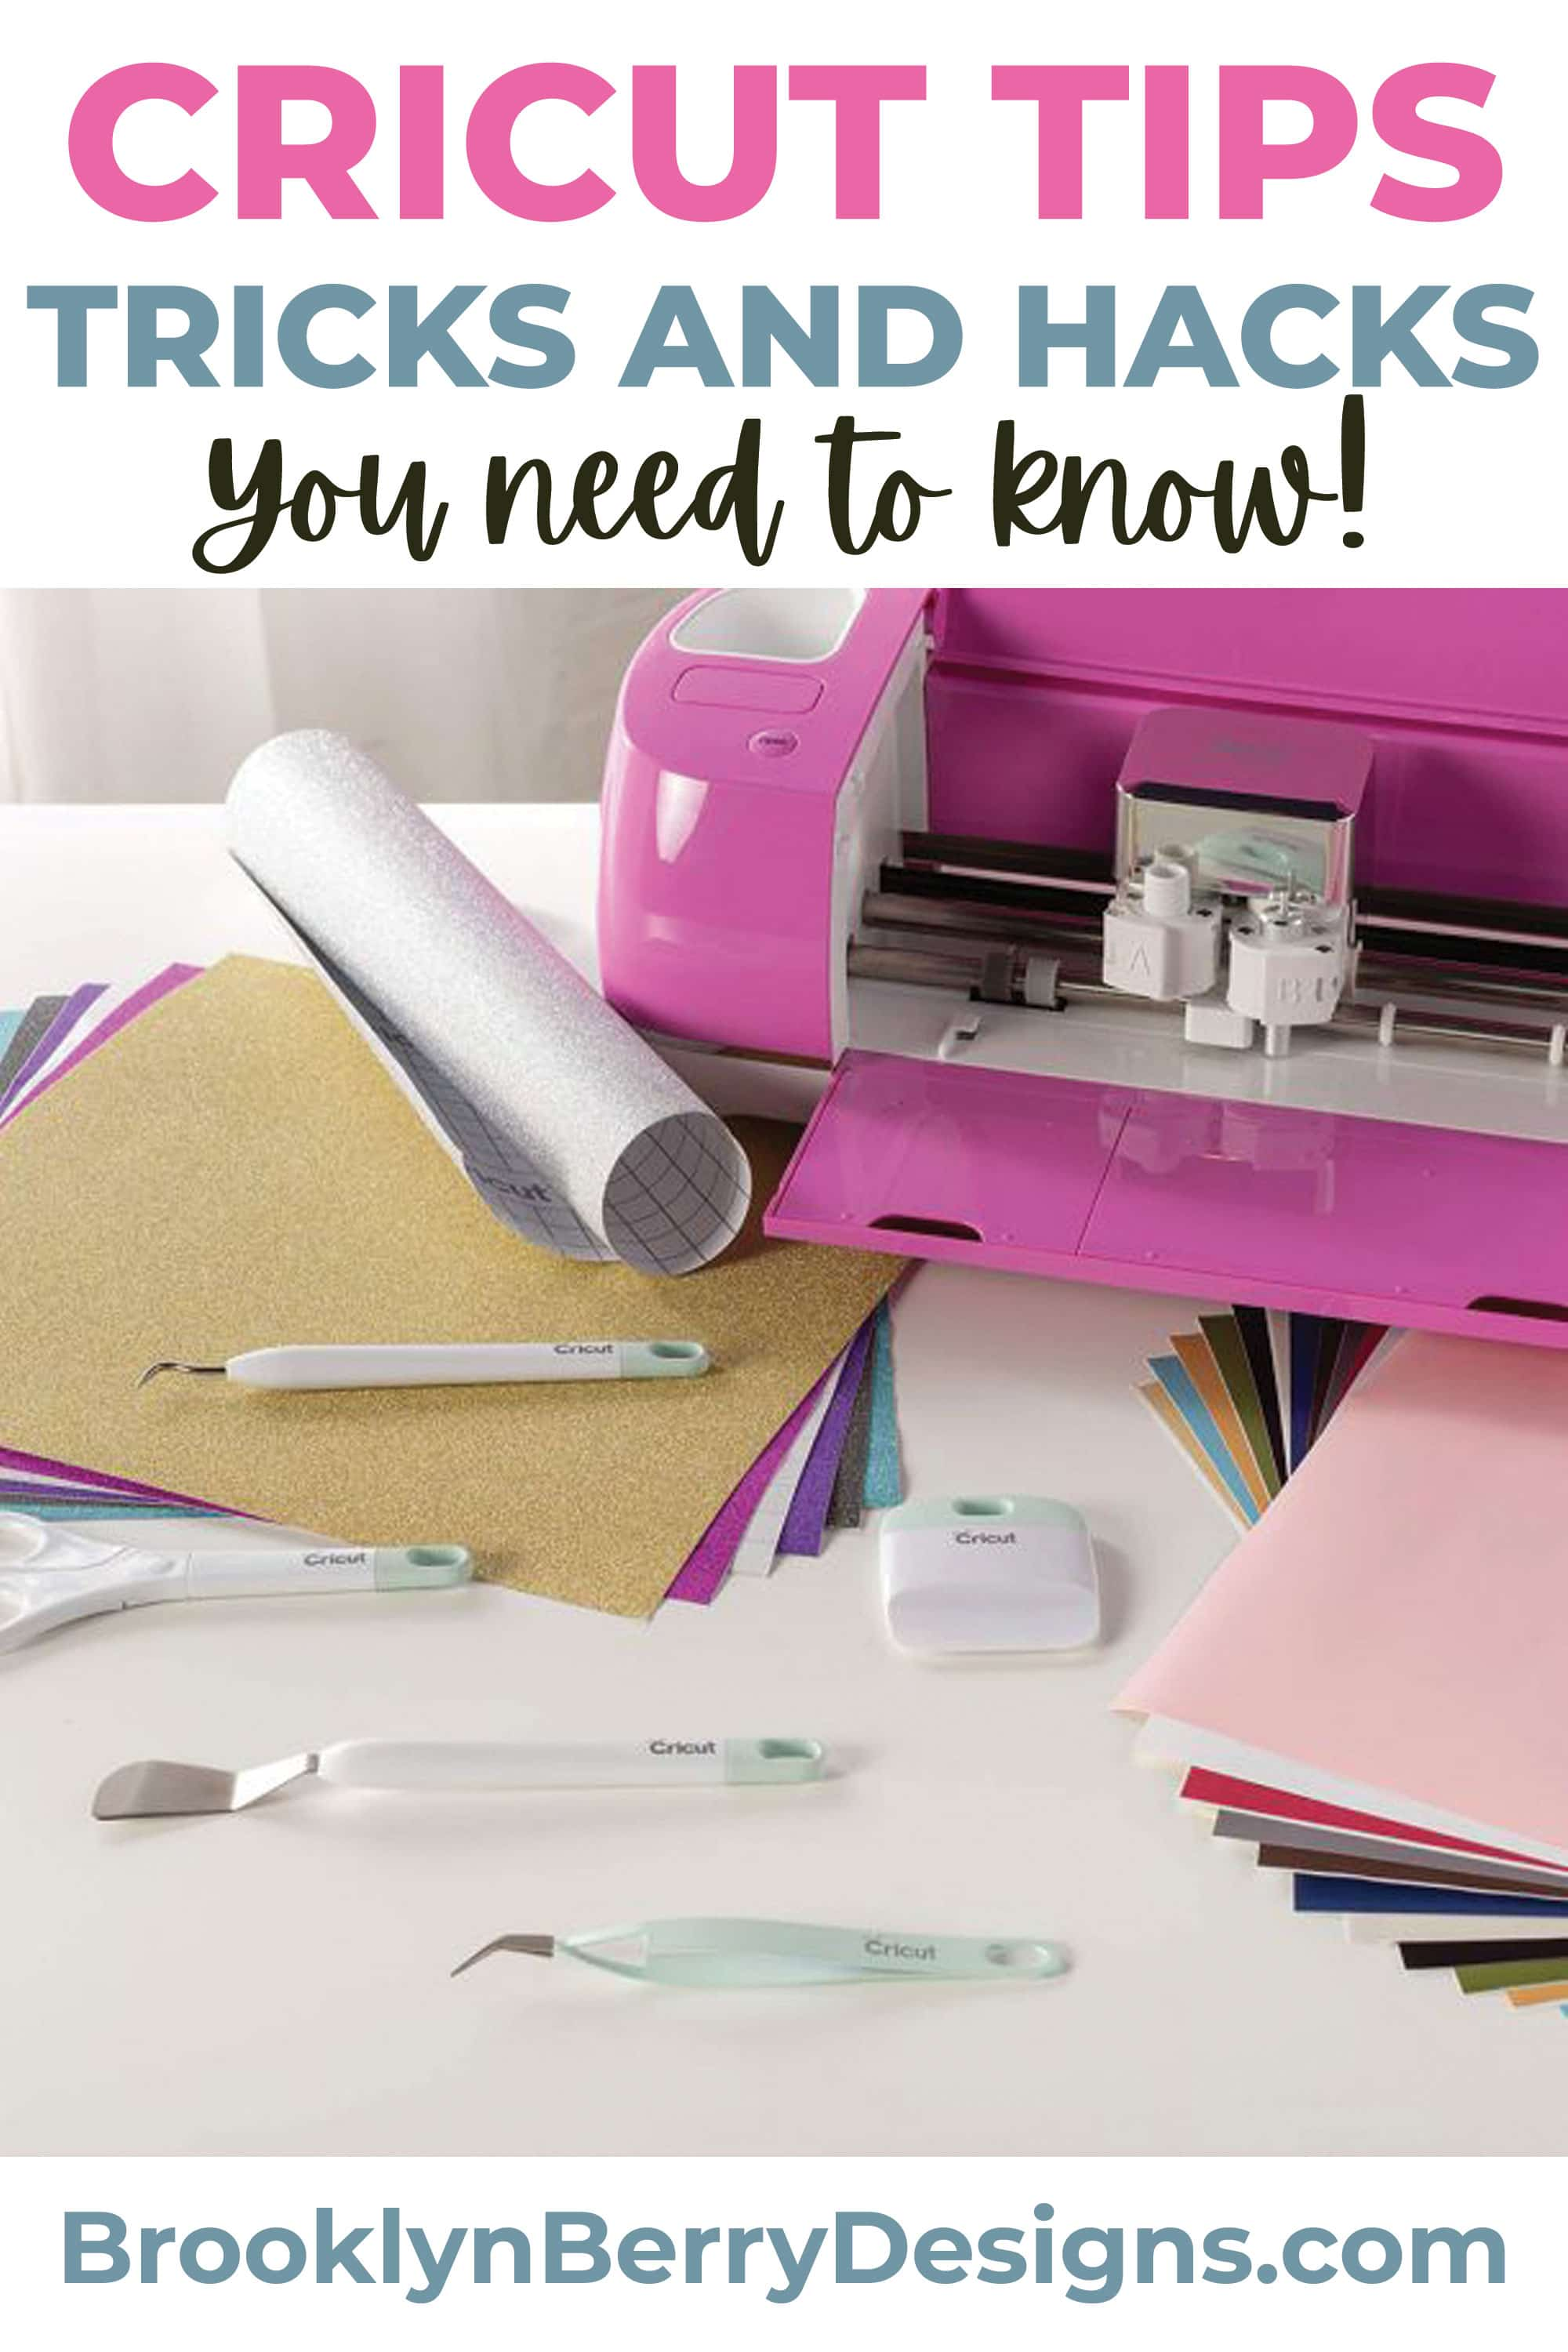 Cricut tips, tricks, and hacks - what you need to know for beginner cricut users. via @brookeberry